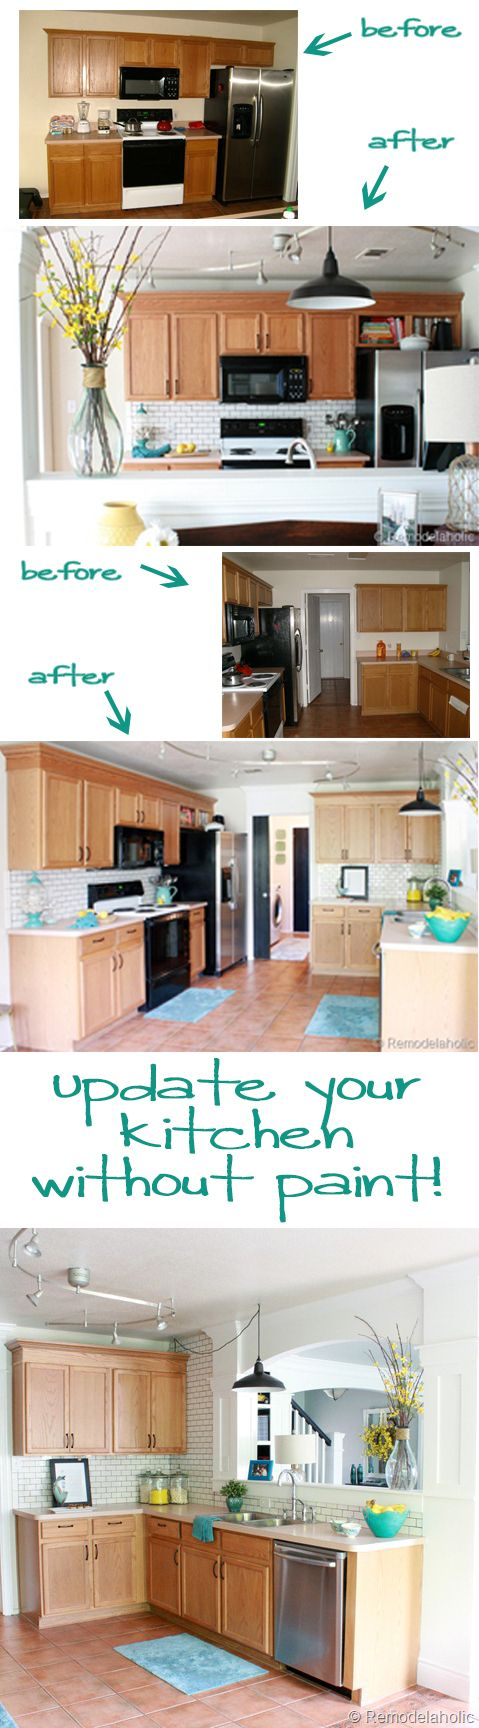 B82944 kitchen cabinets diy kitchens - Kitchen Makeover Without Painting Remodelaholic Com Kitchen Wood Makeover Oak Kitchen Cabinetsoak Kitchensoak